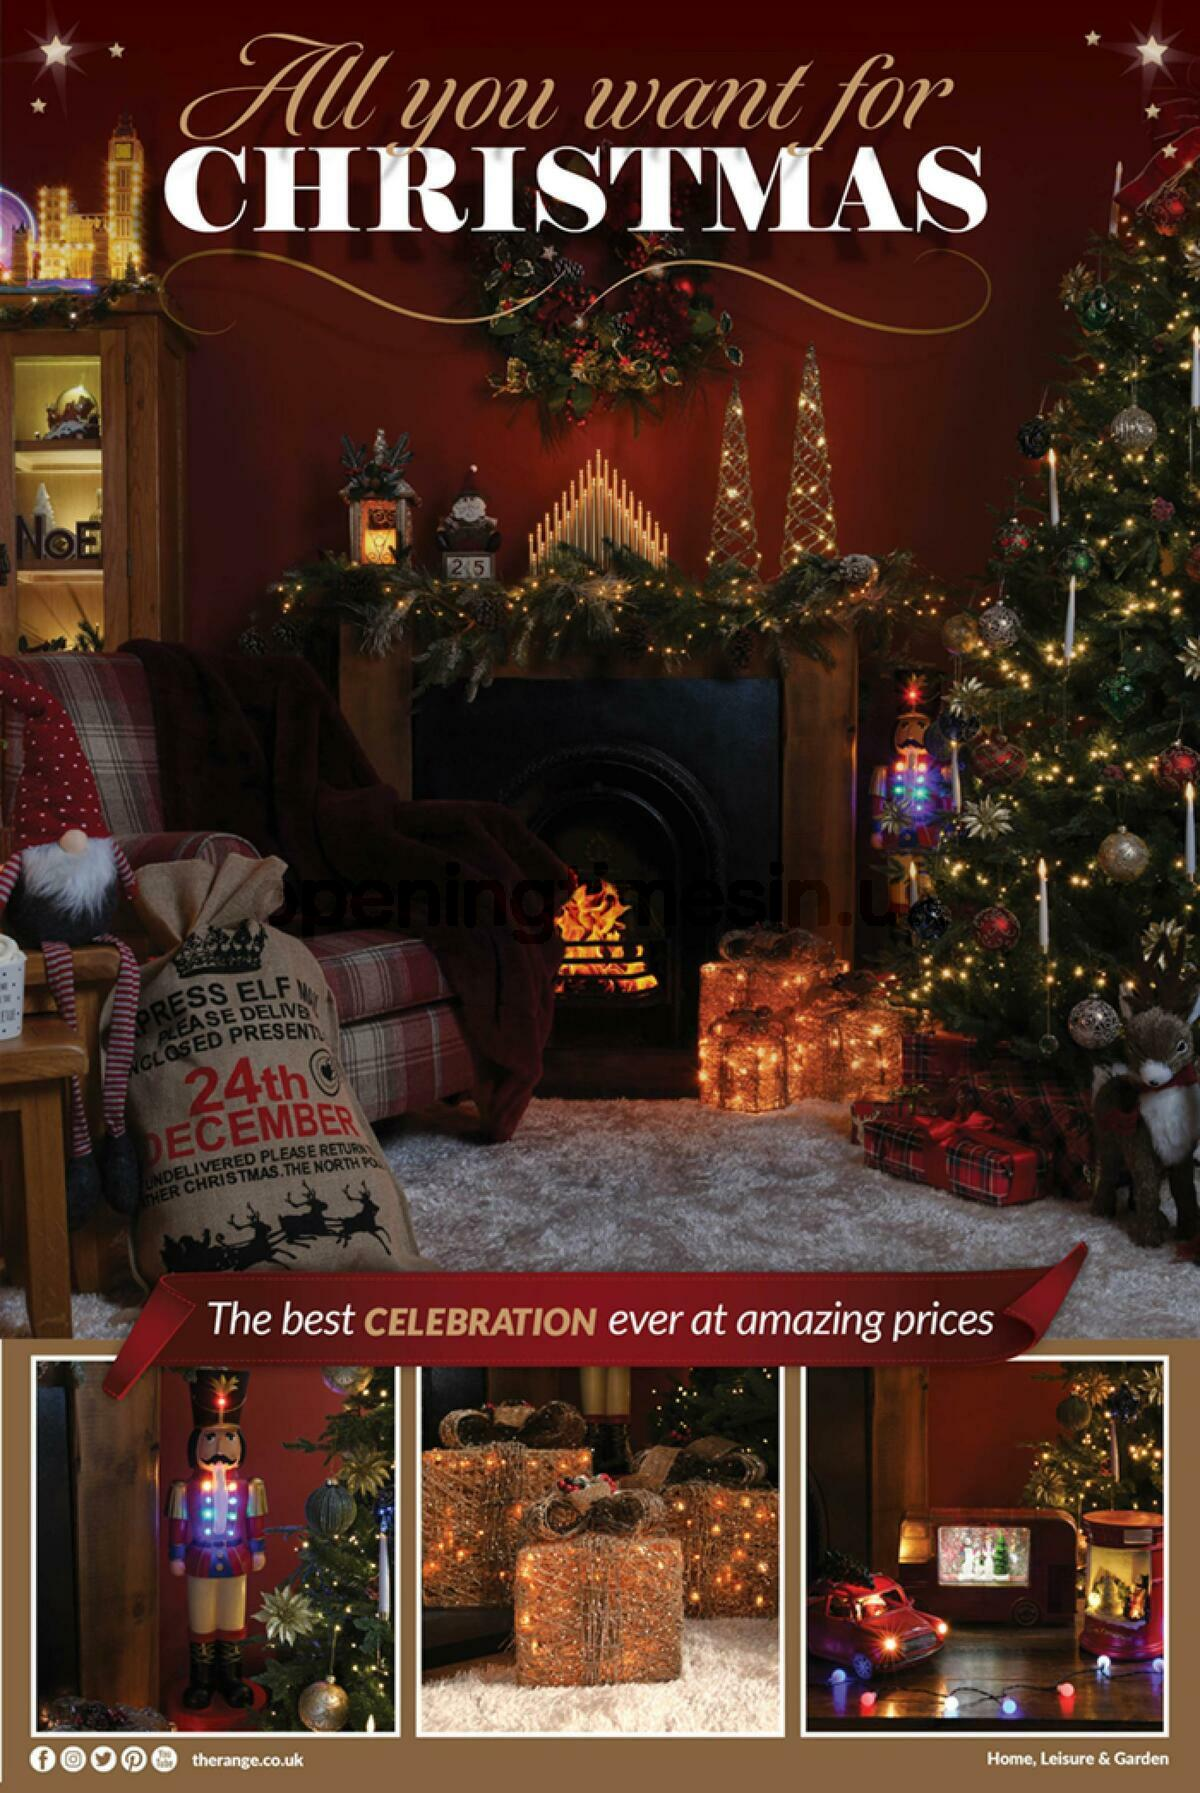 The Range All You Want For Christmas Offers from October 15